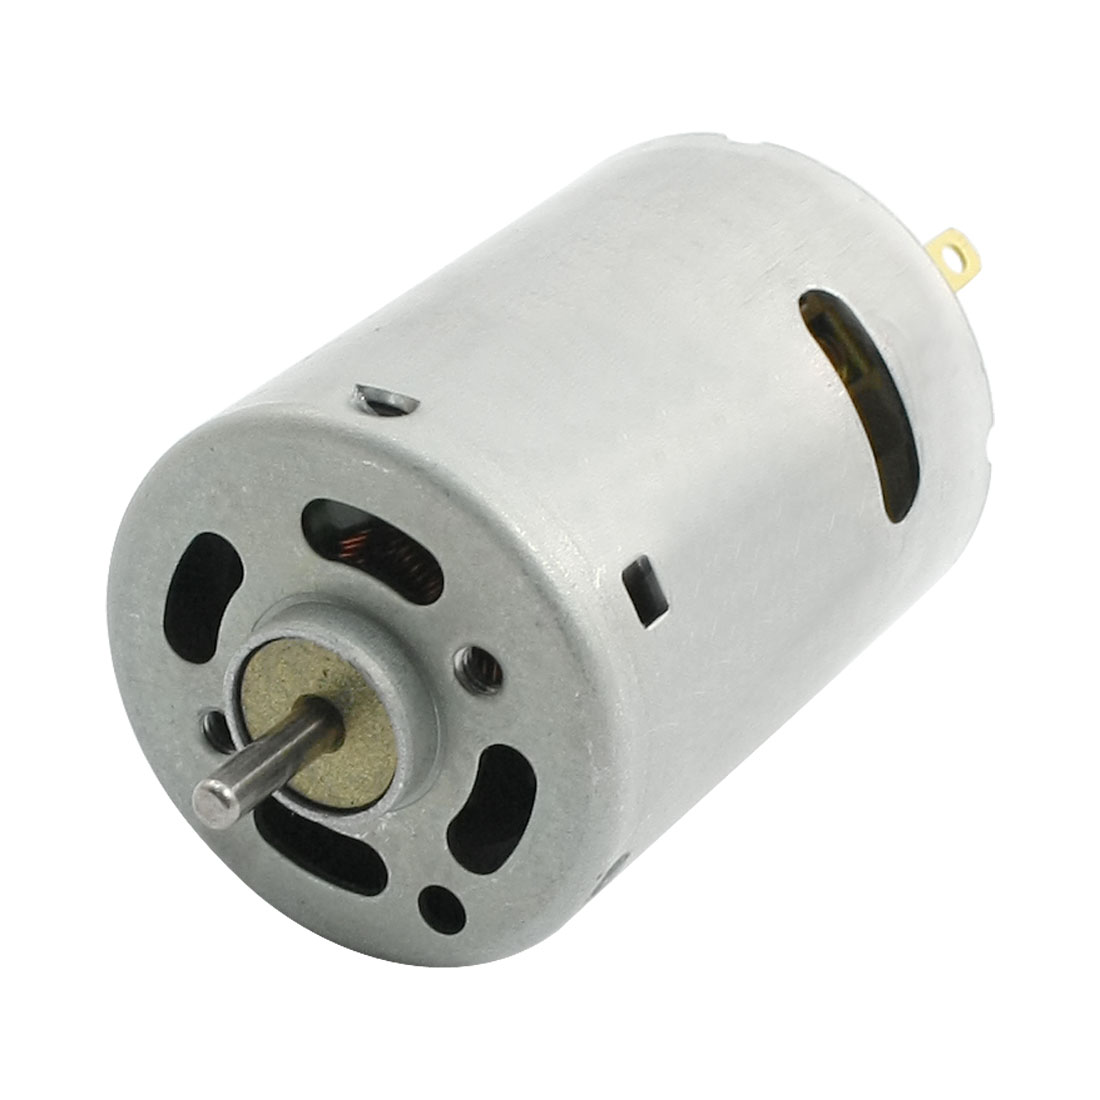 Airplane Model Cylinder Electric Mini Vibration Motor 16000RPM DC 3-9V